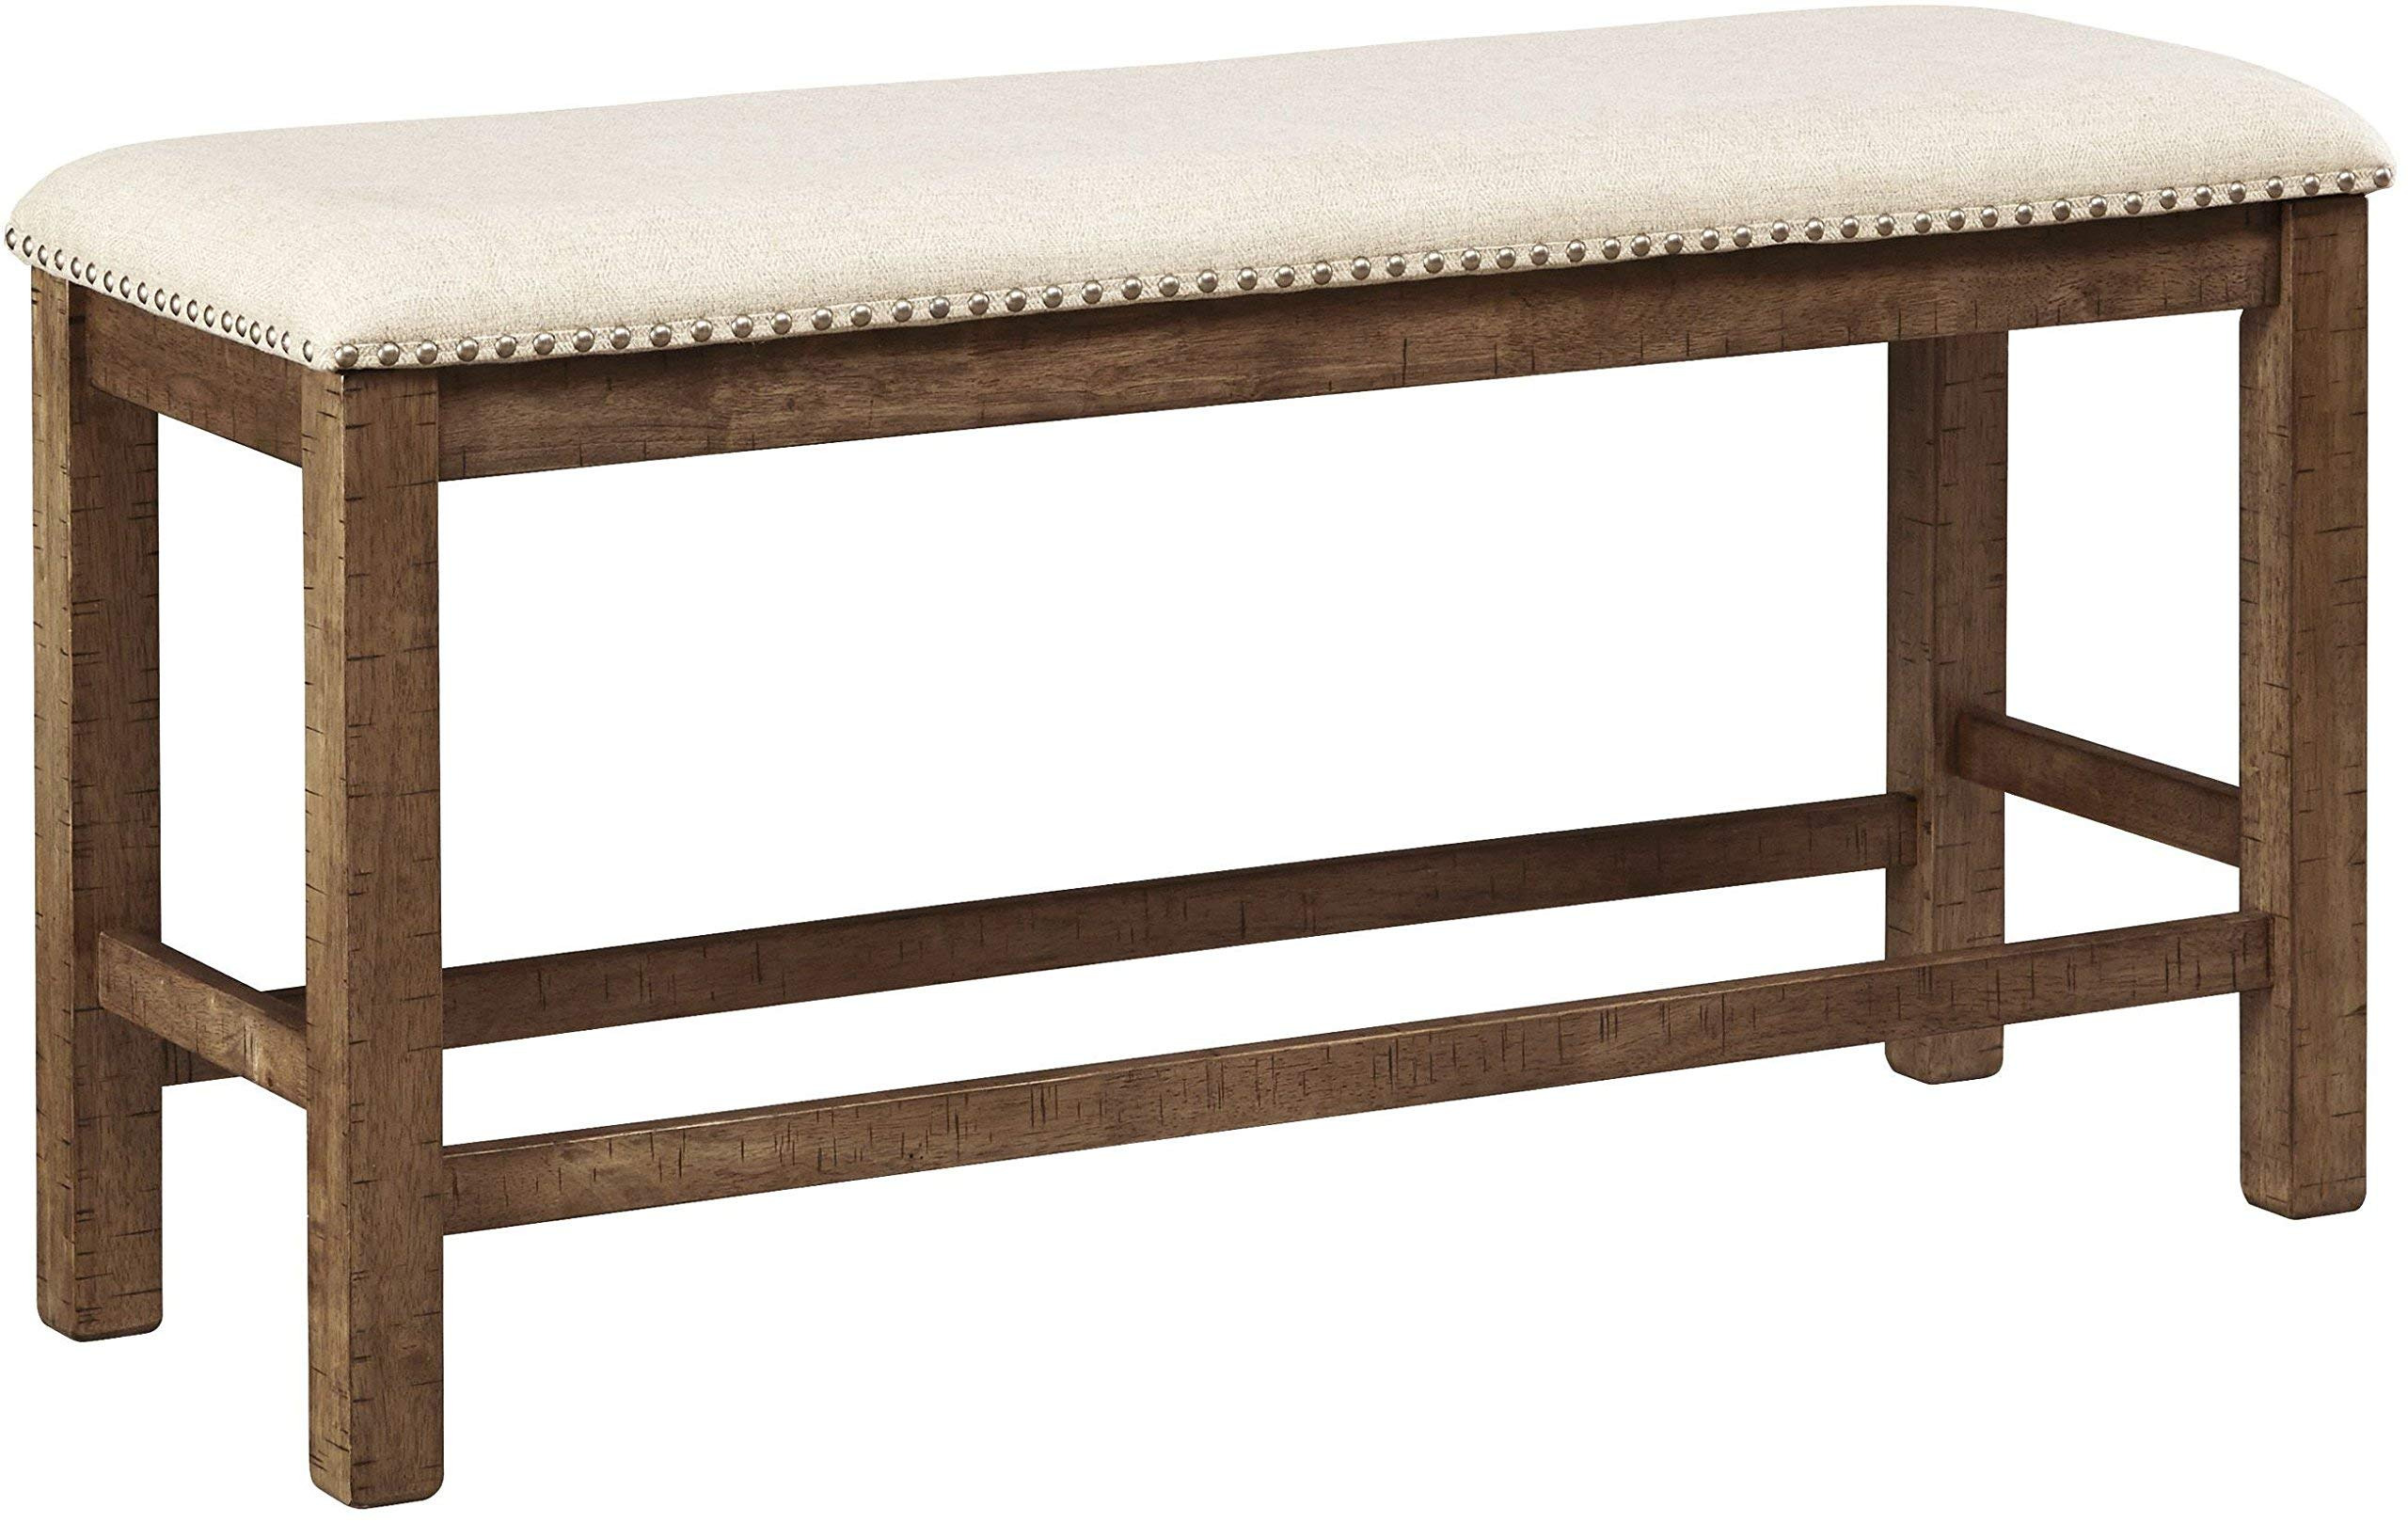 Ashley Furniture Signature Design - Moriville Counter Height Dining Room Bench - Grayish Brown by Signature Design by Ashley